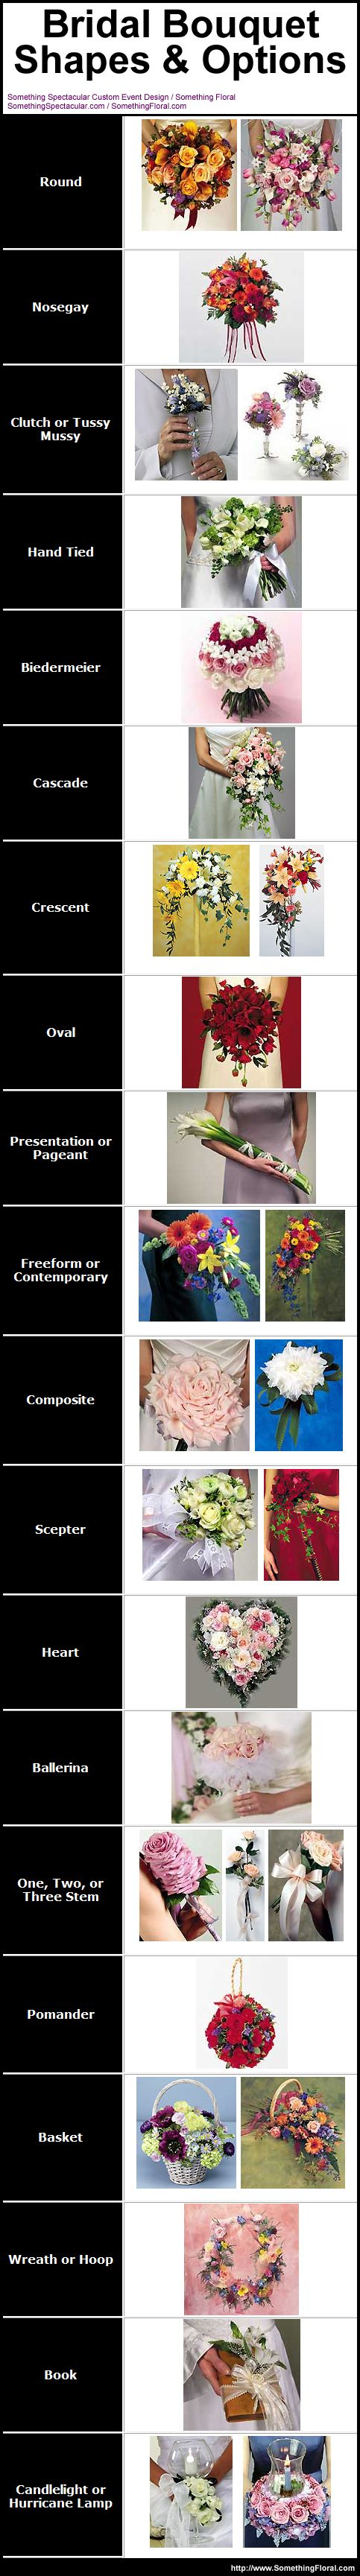 A helpful reference for brides. A pictorial list of bridal bouquet and…